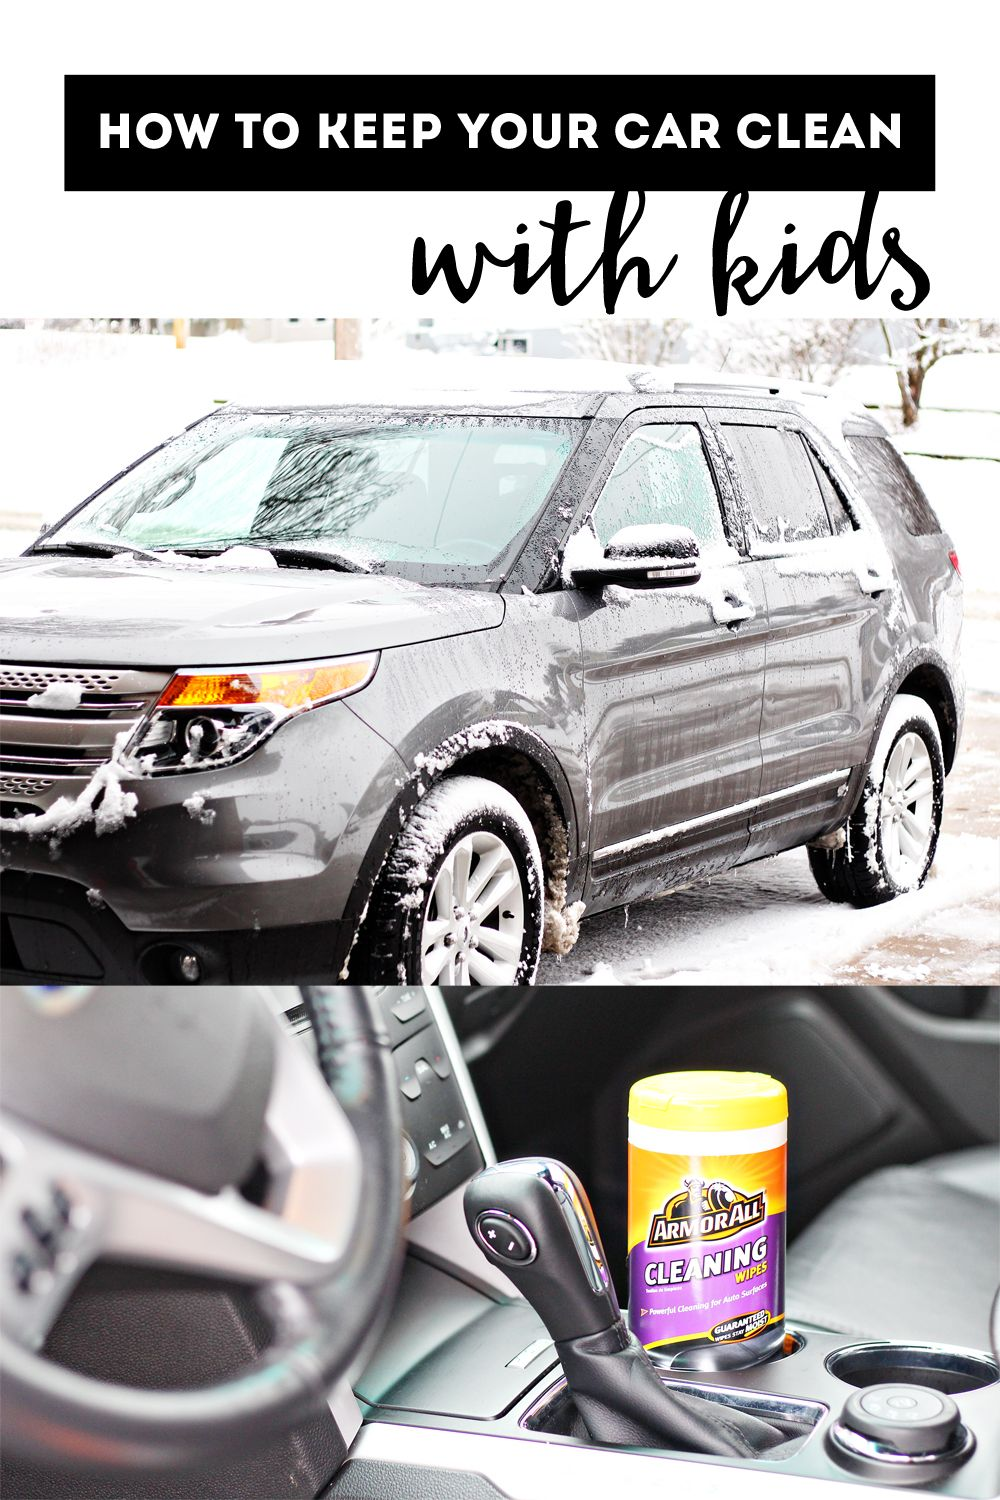 How to Keep a Clean Car with Kids - Sunny with a Chance of Sprinkles  #ArmorAllGiftPack #pMedia #ad